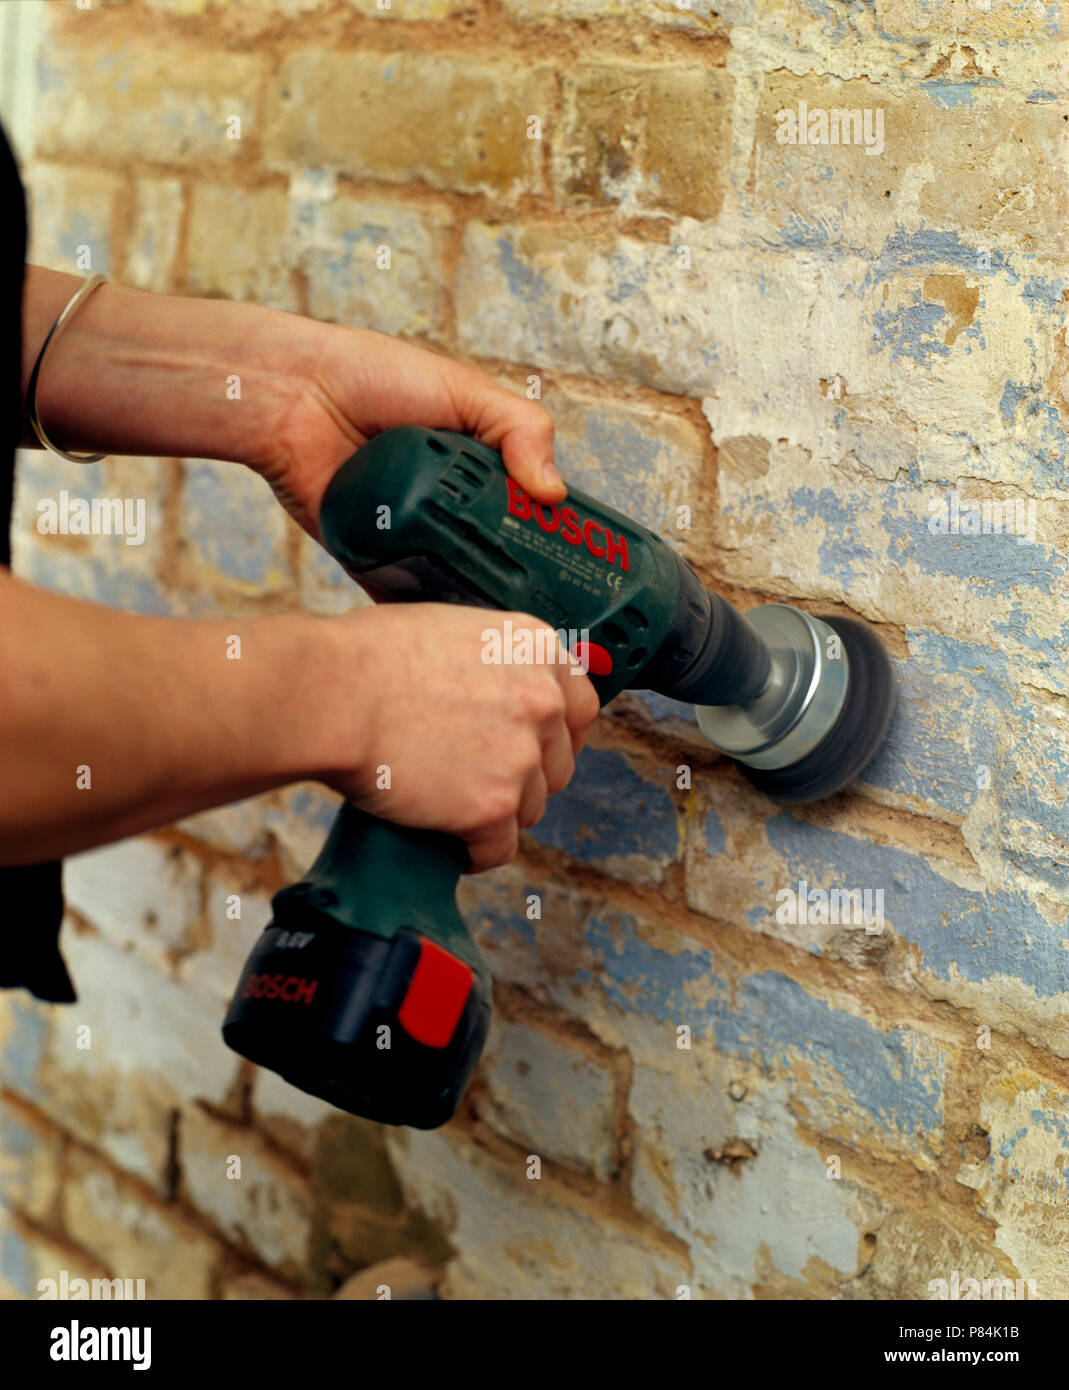 Close-up of hands using the brush attachment on an electric drill to clean an outside wall - Stock Image